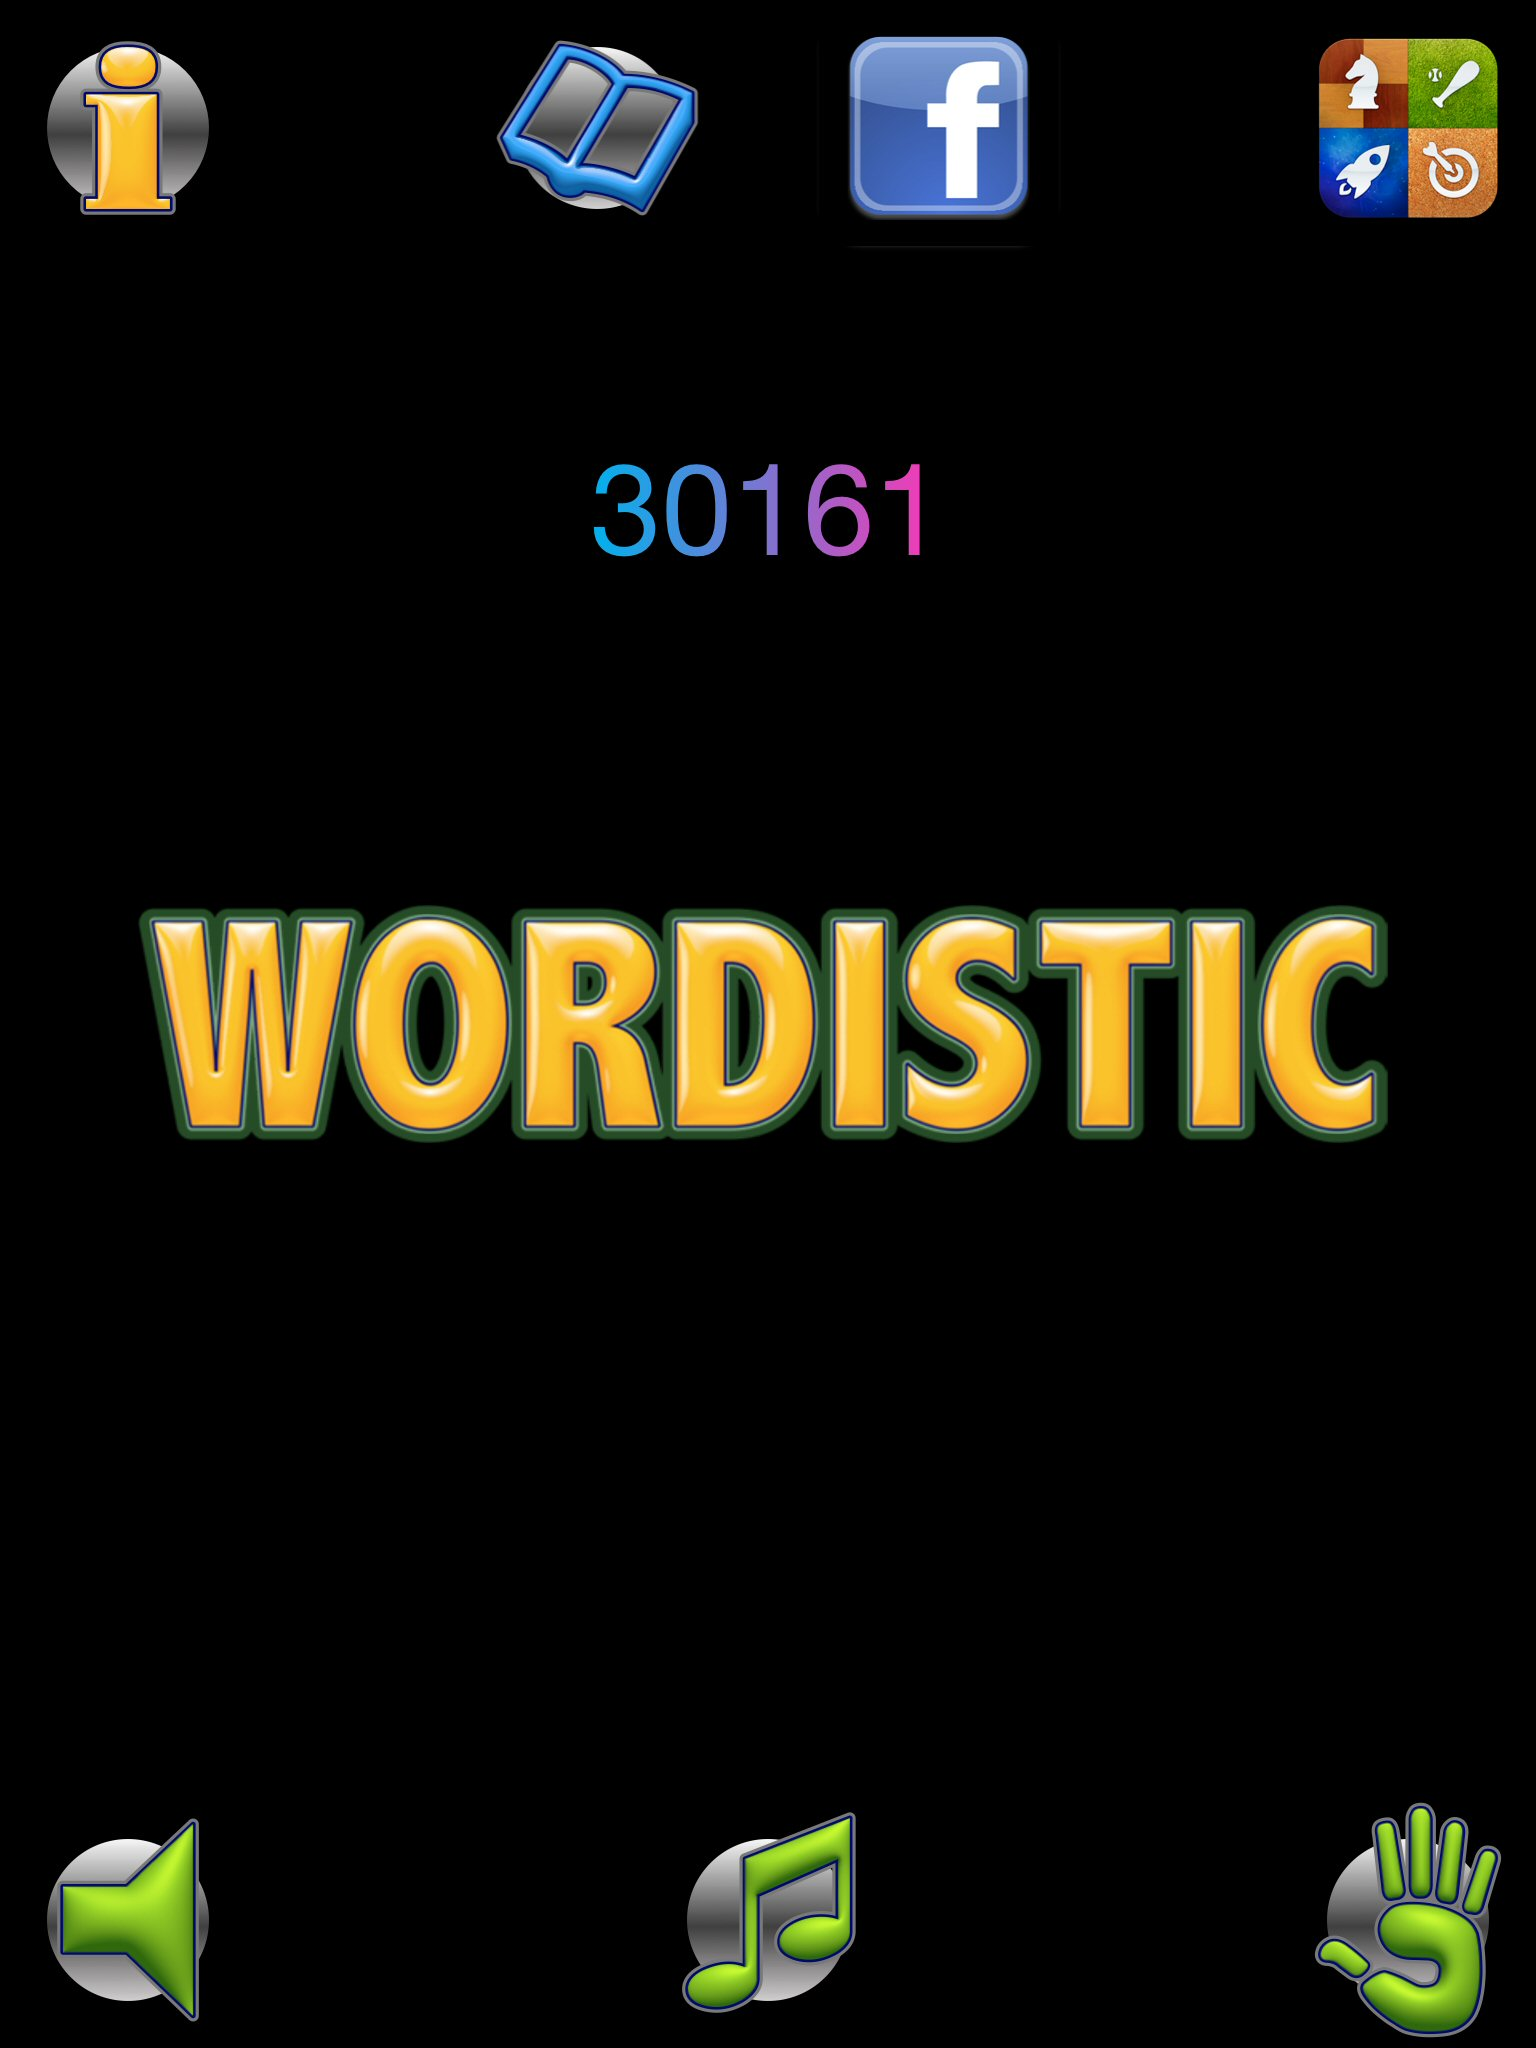 18902 Screenshot 2012.04.30 16.11.19 Wordistic by Mush Dev Studio